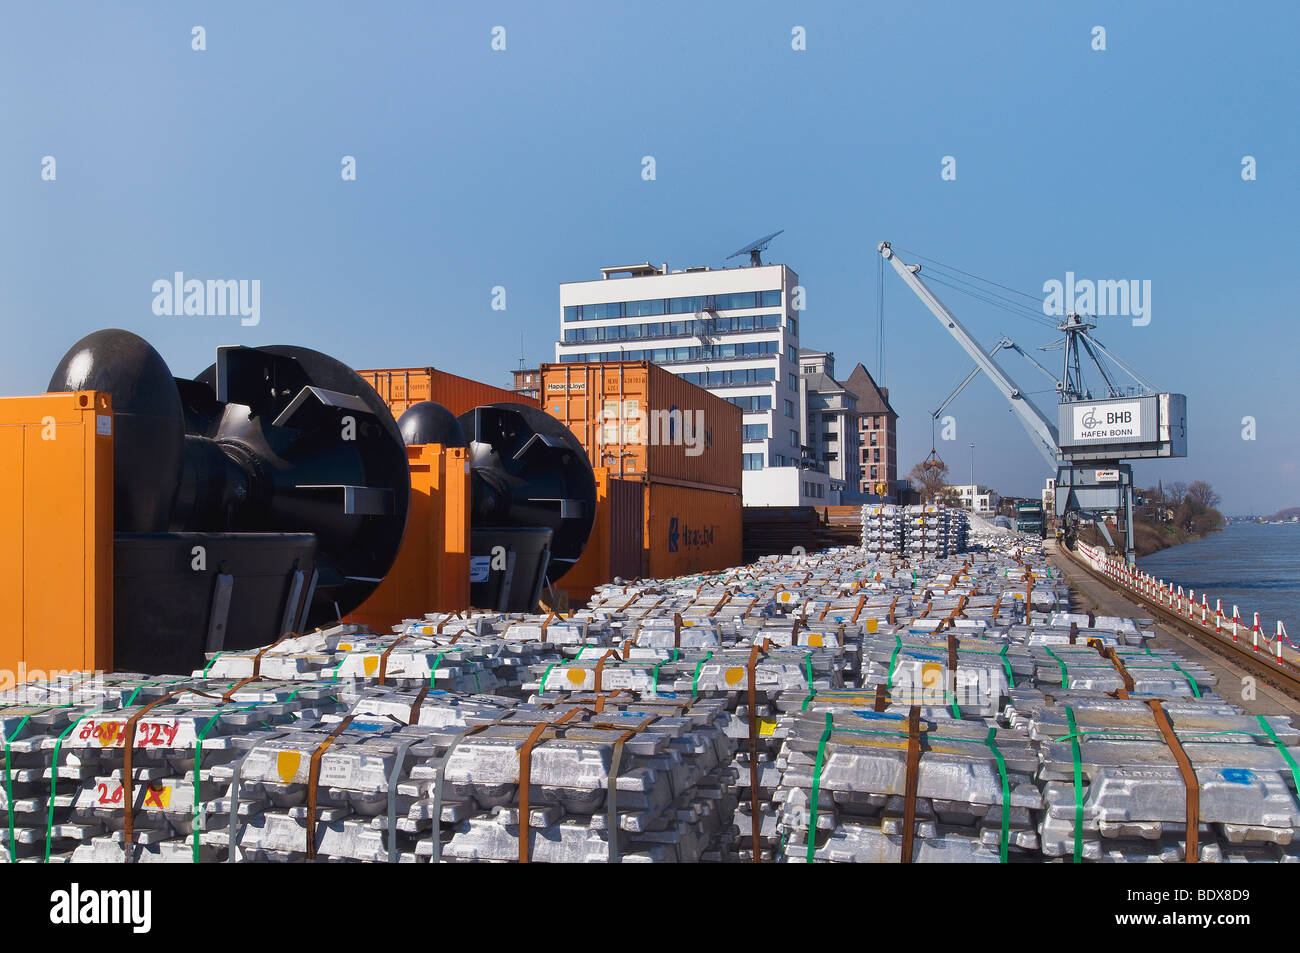 Port Bonn, conventional cargo handling, aluminum ingots on the quay, next to them turbines on flat containers, flats, - Stock Image